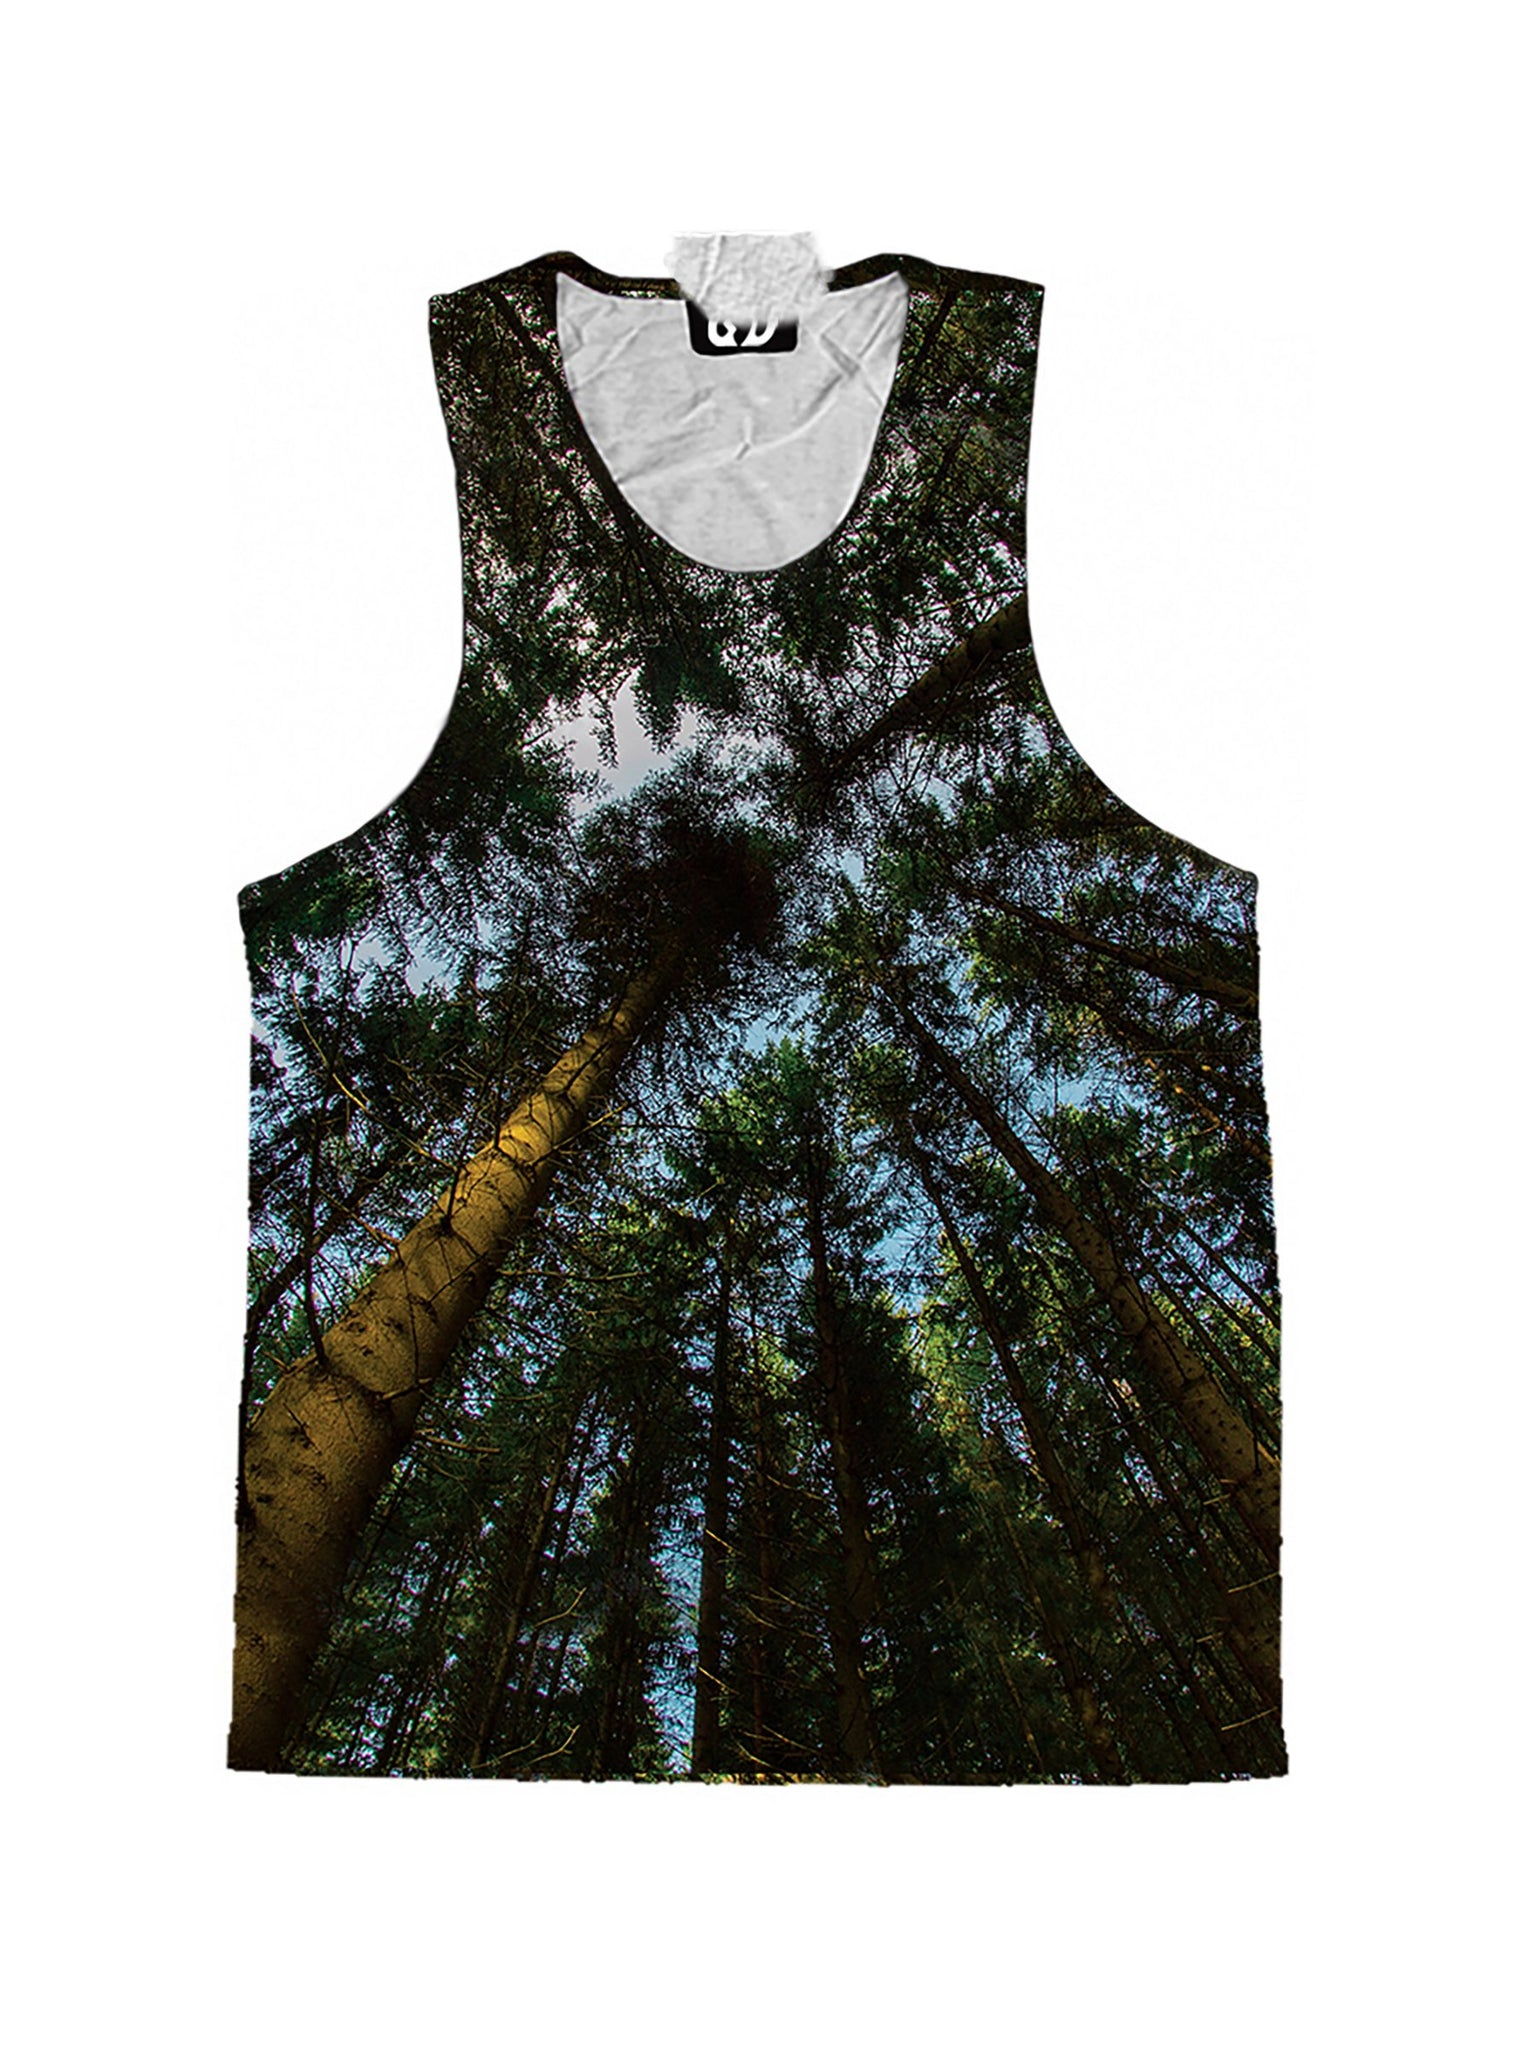 Out of the Woods Premium Tank Top